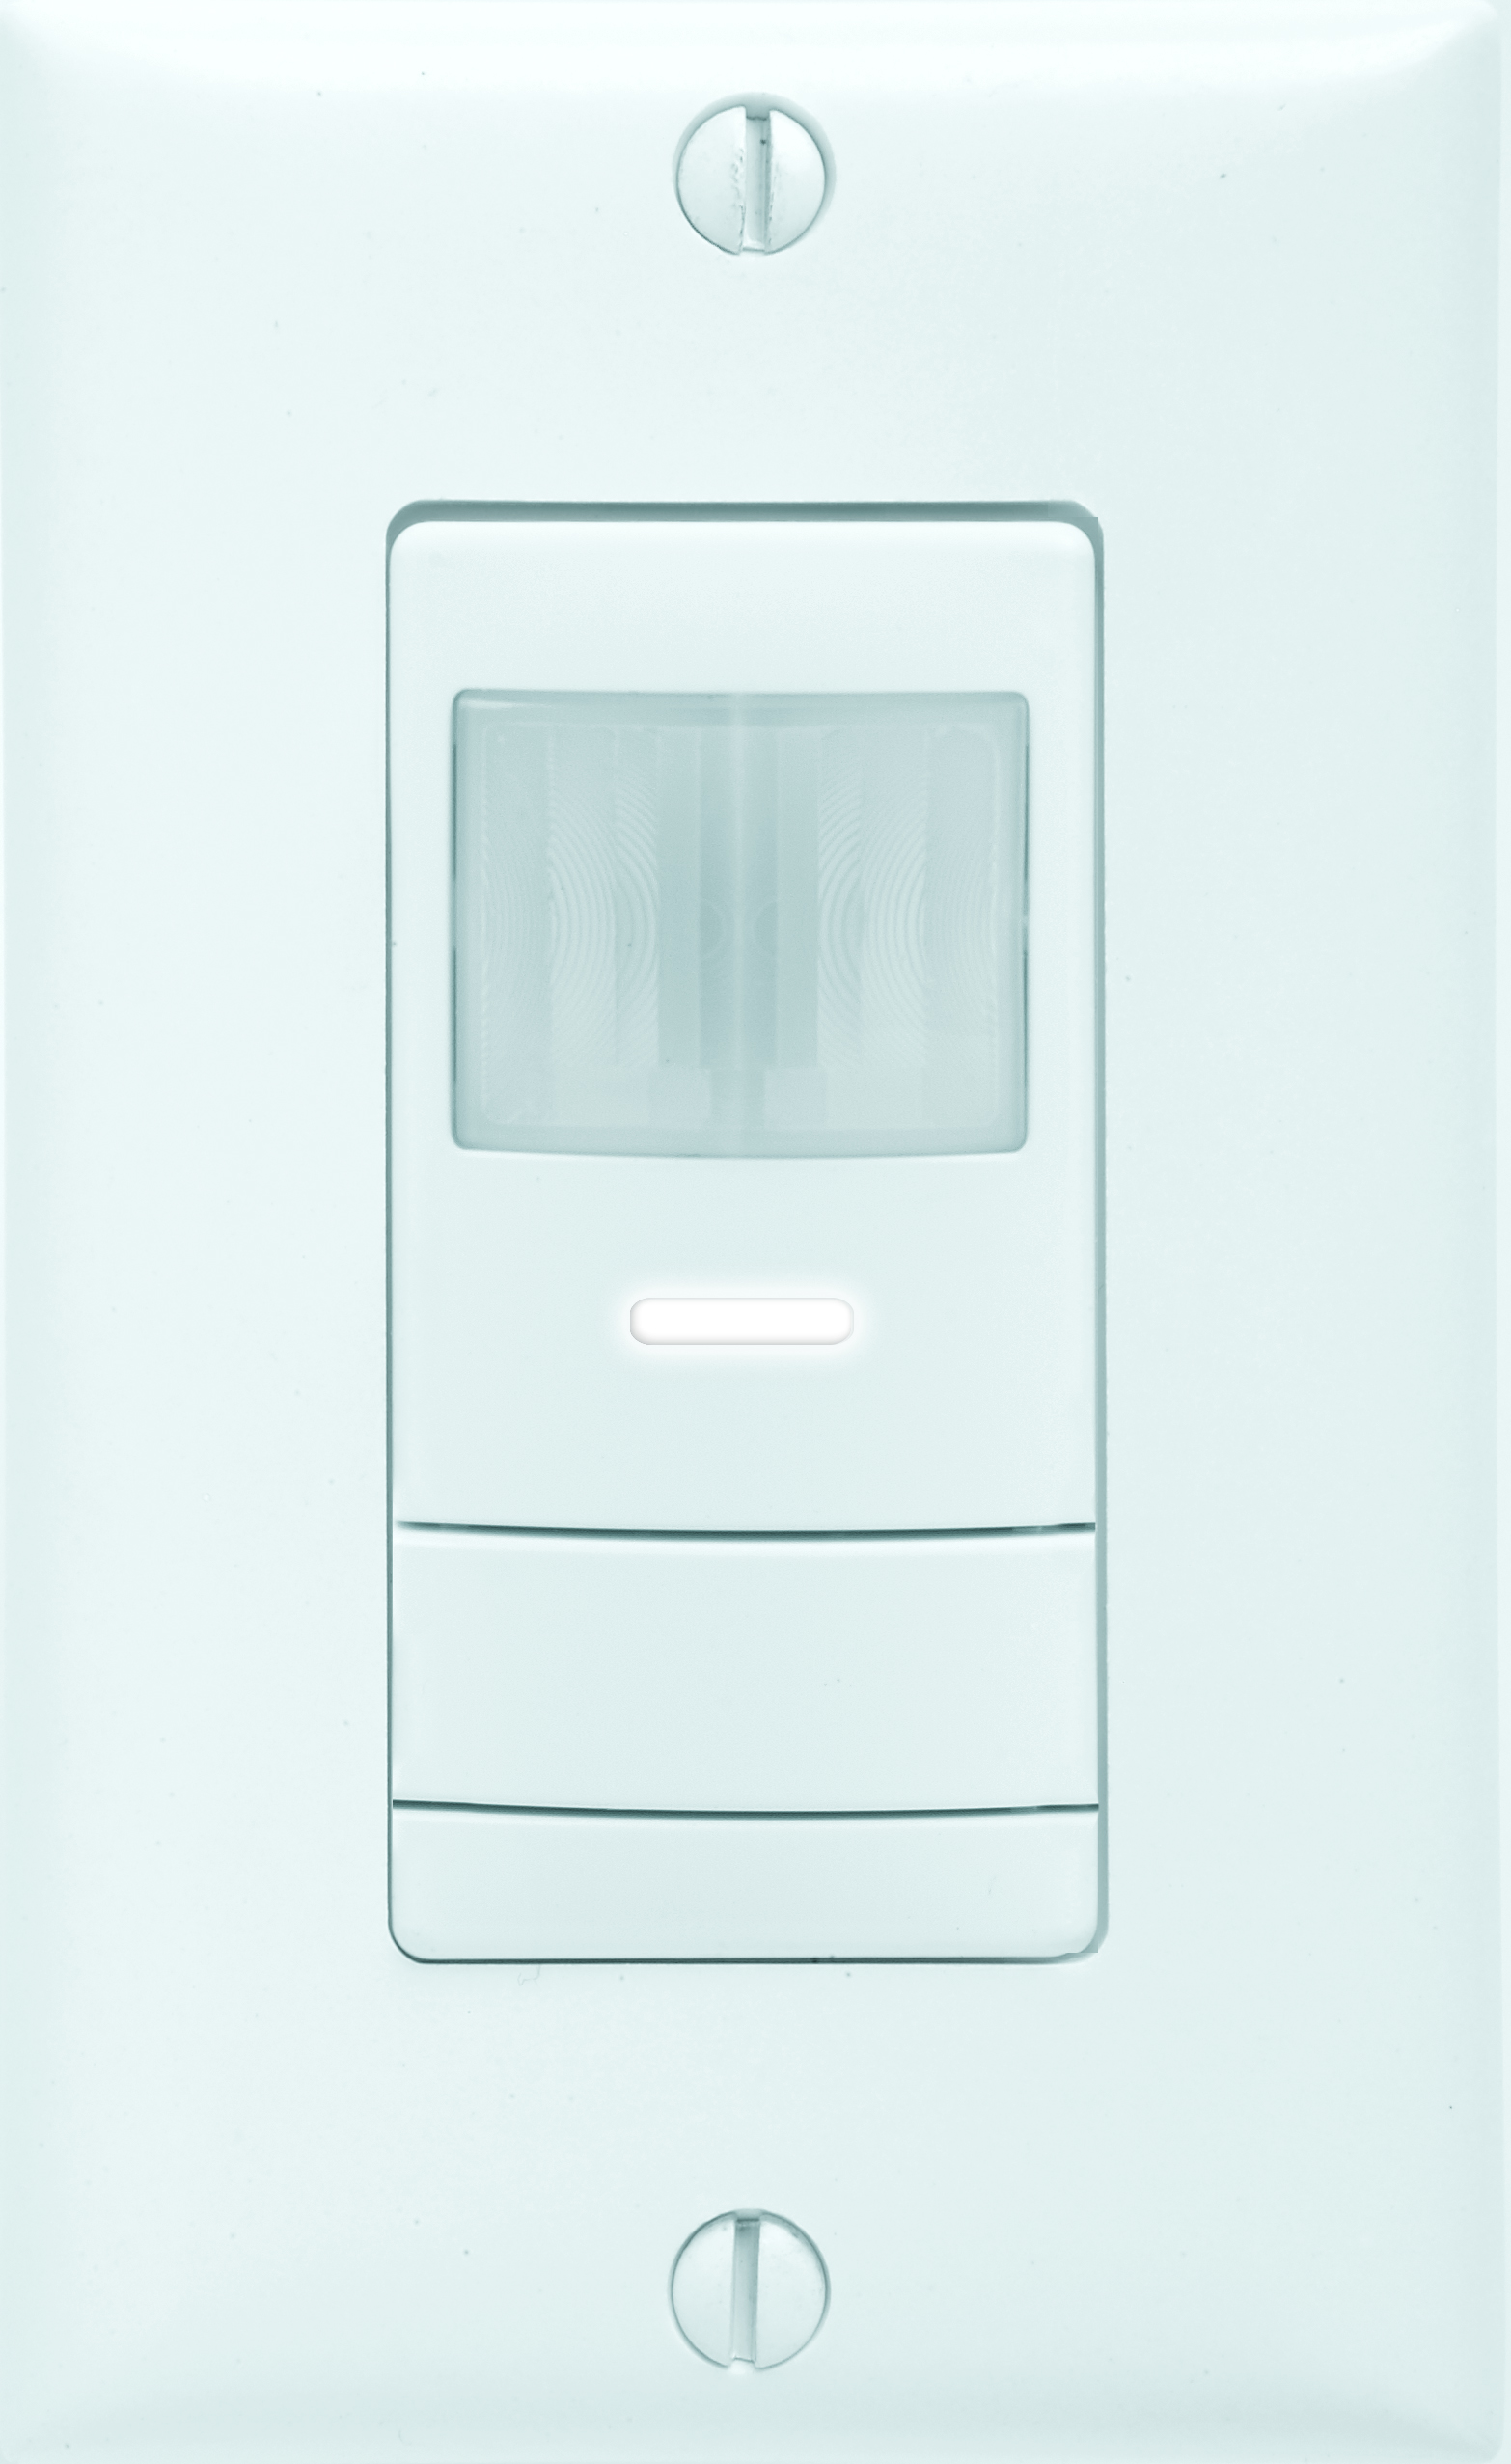 Lithonia Lighting / Acuity WSX-PDT-2P-IV WSX Series Dual Relay Wall Switch Occupancy Sensor; Dual Technology (PIR/Microphonics™)